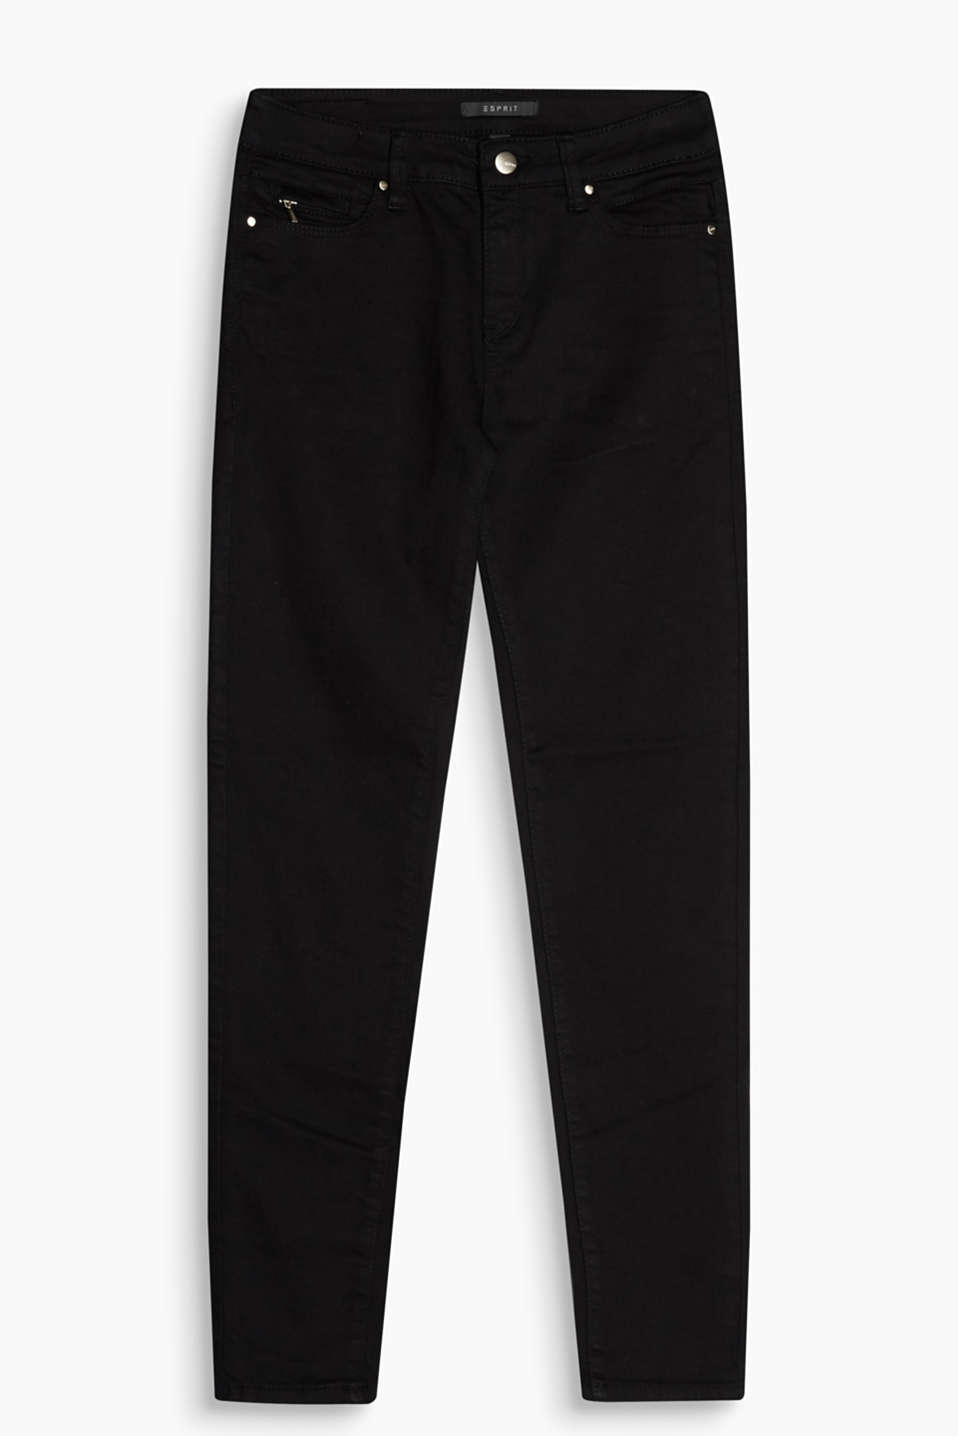 Cropped, jet black stretch jeans with a small zip pocket